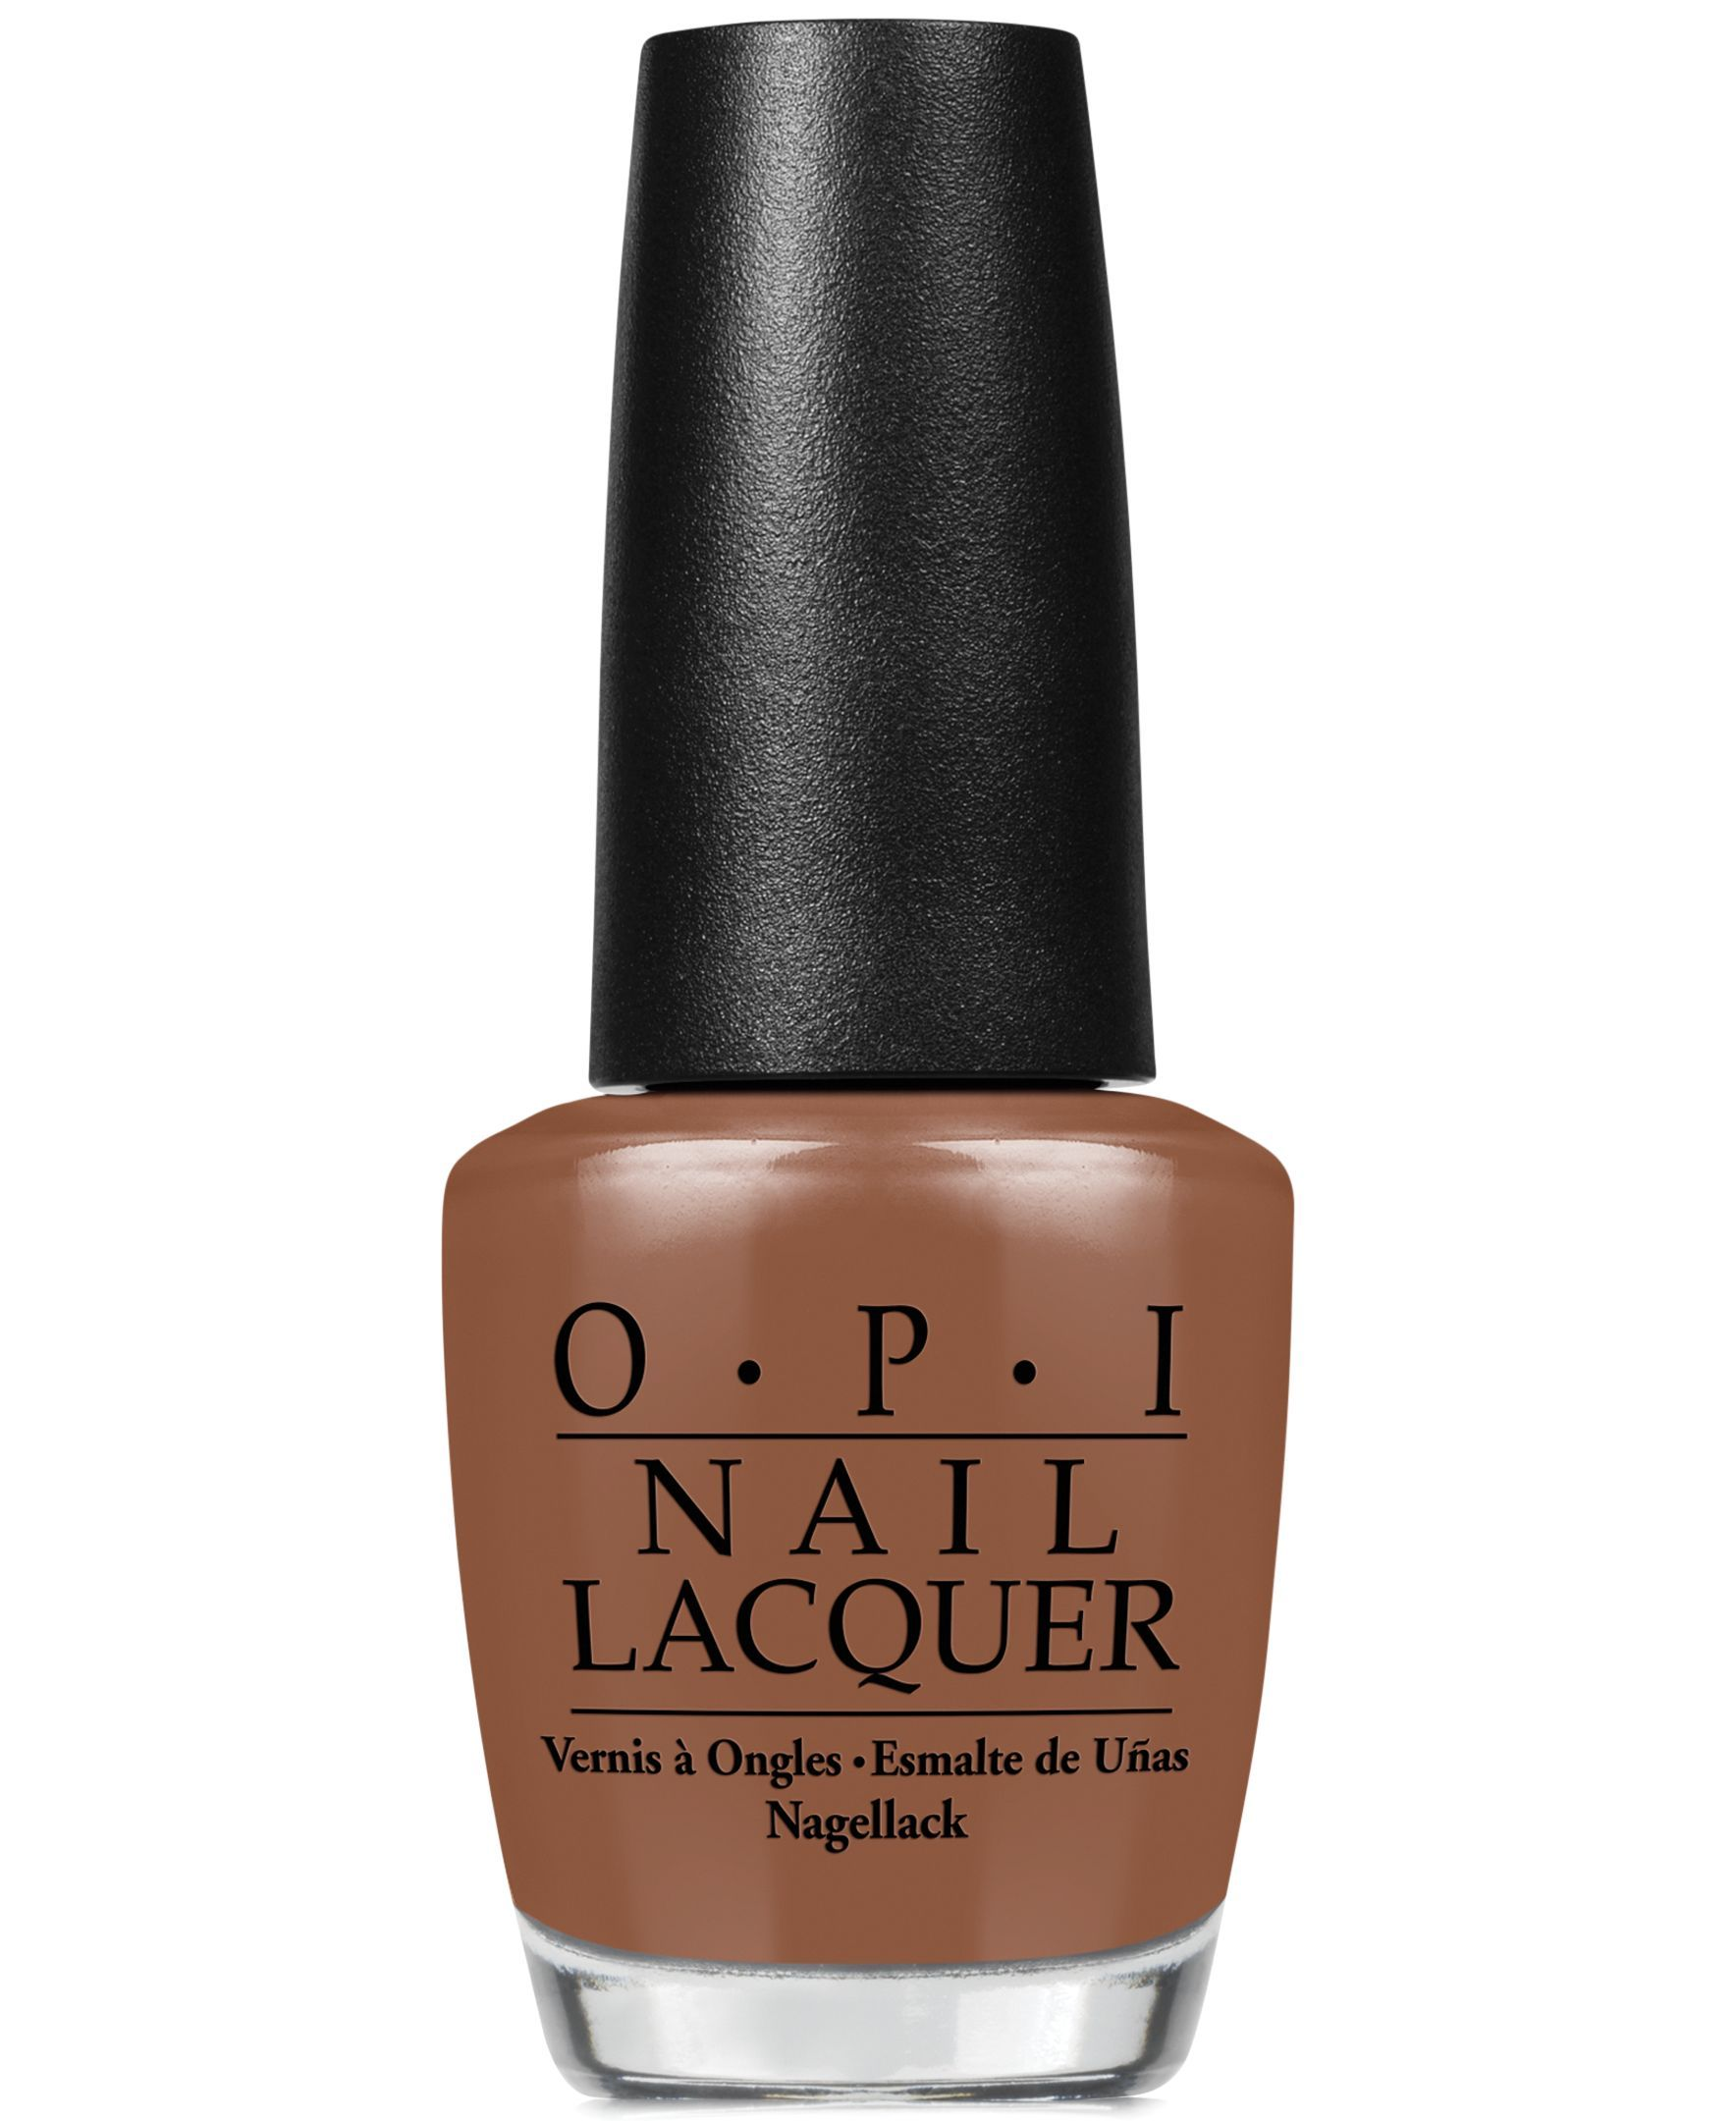 Opi Nail Lacquer, Ice-Bergers & Fries